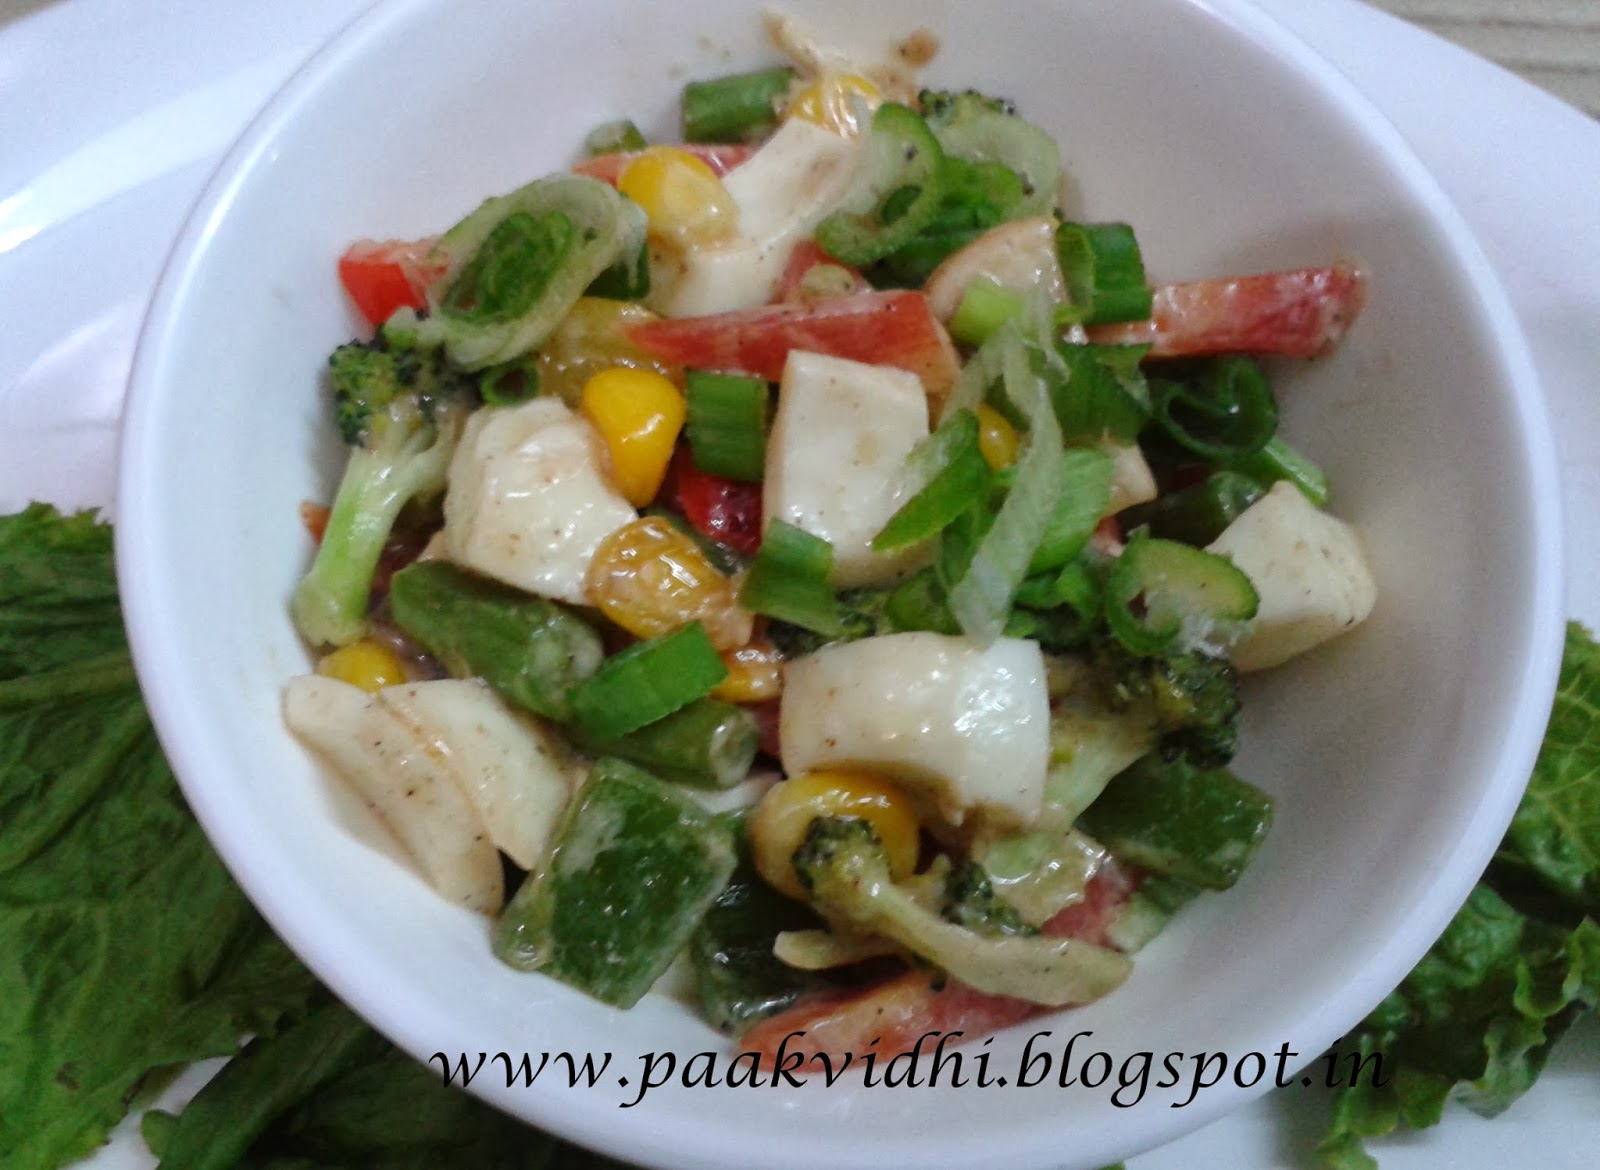 http://paakvidhi.blogspot.in/2014/01/boiled-egg-with-stir-fried-vegetables.html